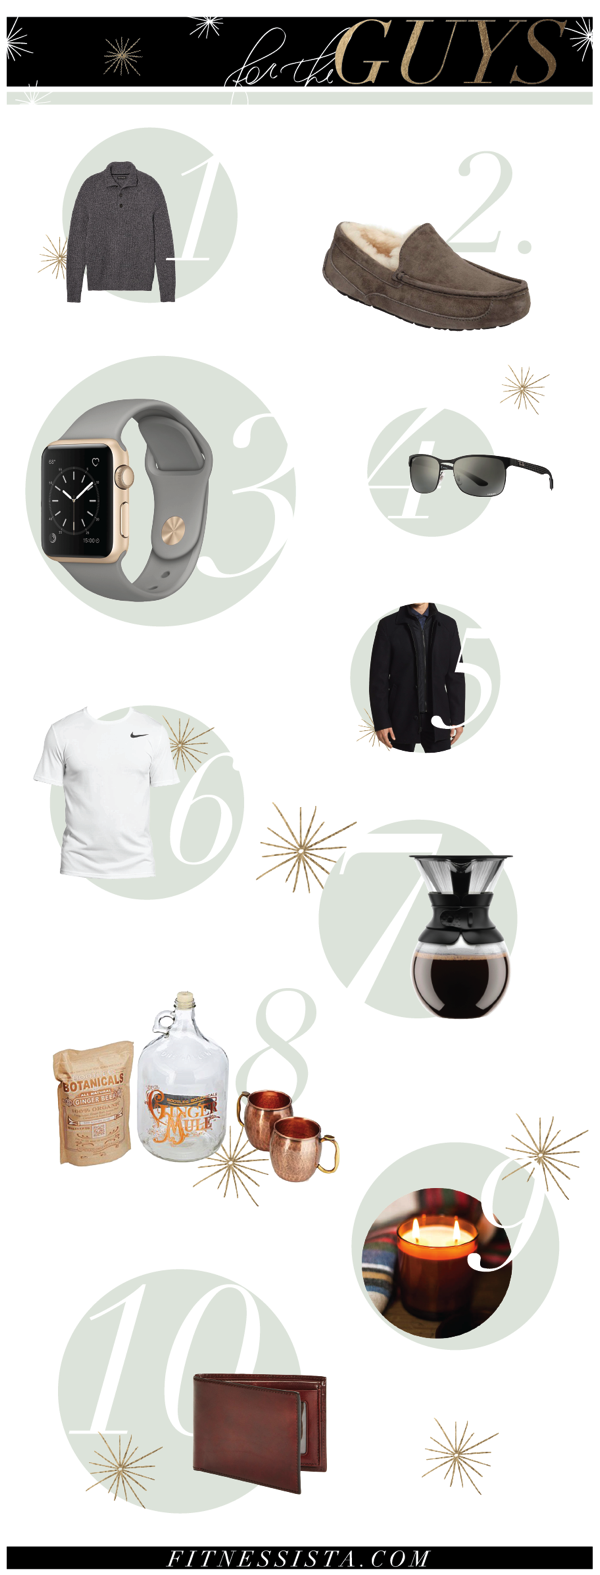 Fitnessista Gift Guide for the Guys - Here's a list of holiday gifts for men! The men in my life tend to be the hardest for me to shop for, so I scoured the internet for some ideas to share. fitnessista.com #giftguide #giftsformen #holidays #christmasshopping #holidaygiftguide